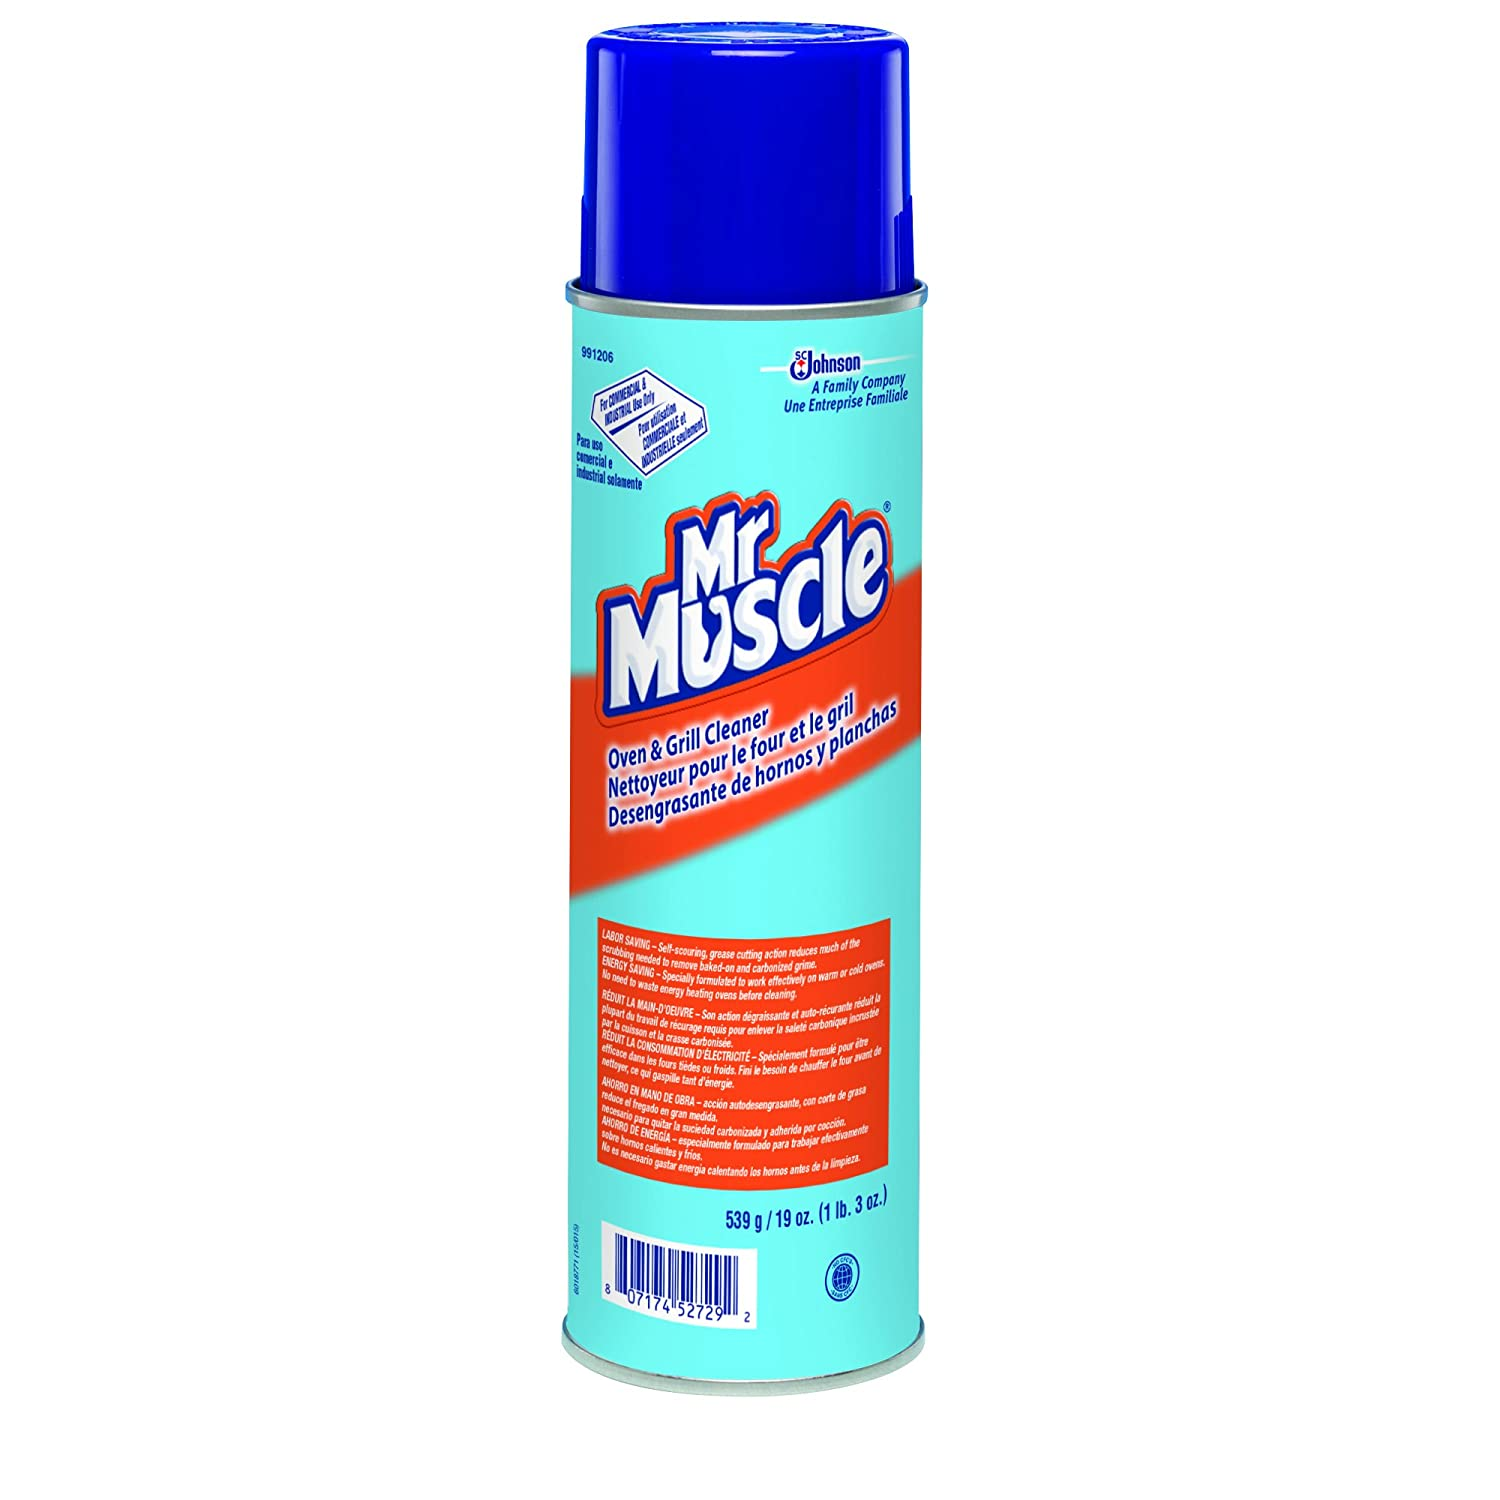 Mr Muscle Bathroom And Toilet Cleaner Safety Data Sheet - Amazon com diversey mr muscle oven and grill cleaner 19 ounce case of 6 industrial scientific